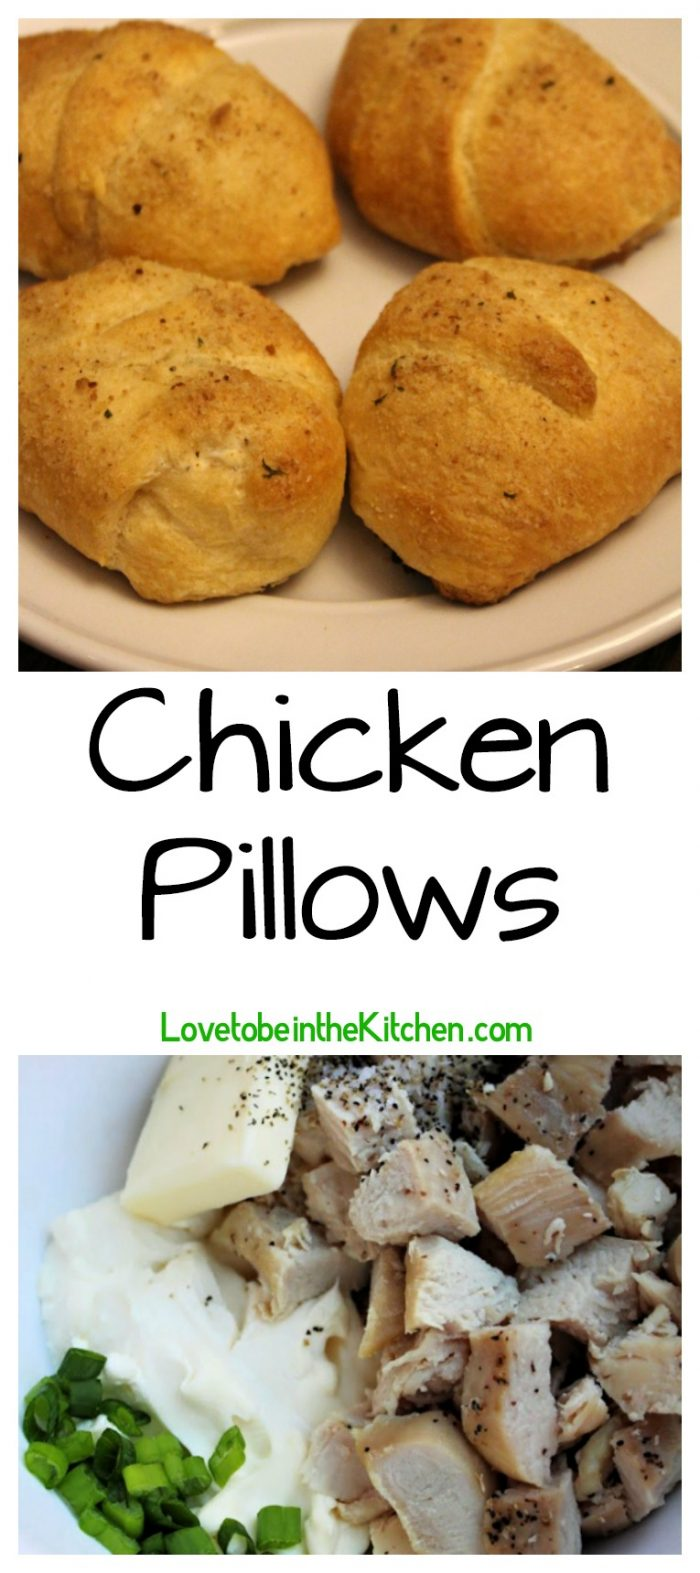 Chicken Pillows